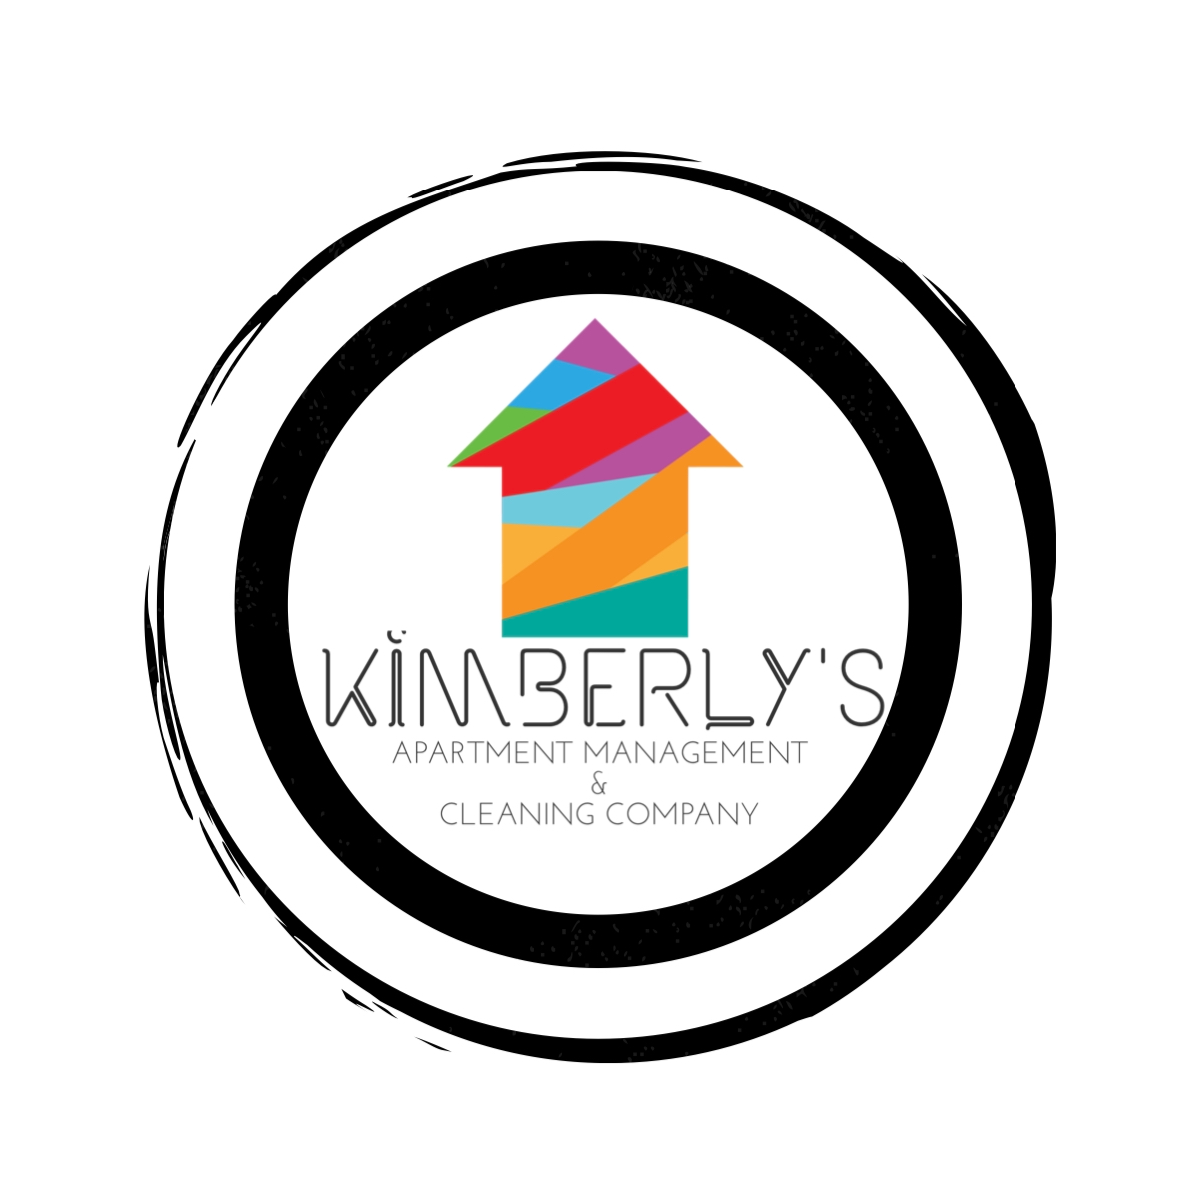 Kimberlys Apartments